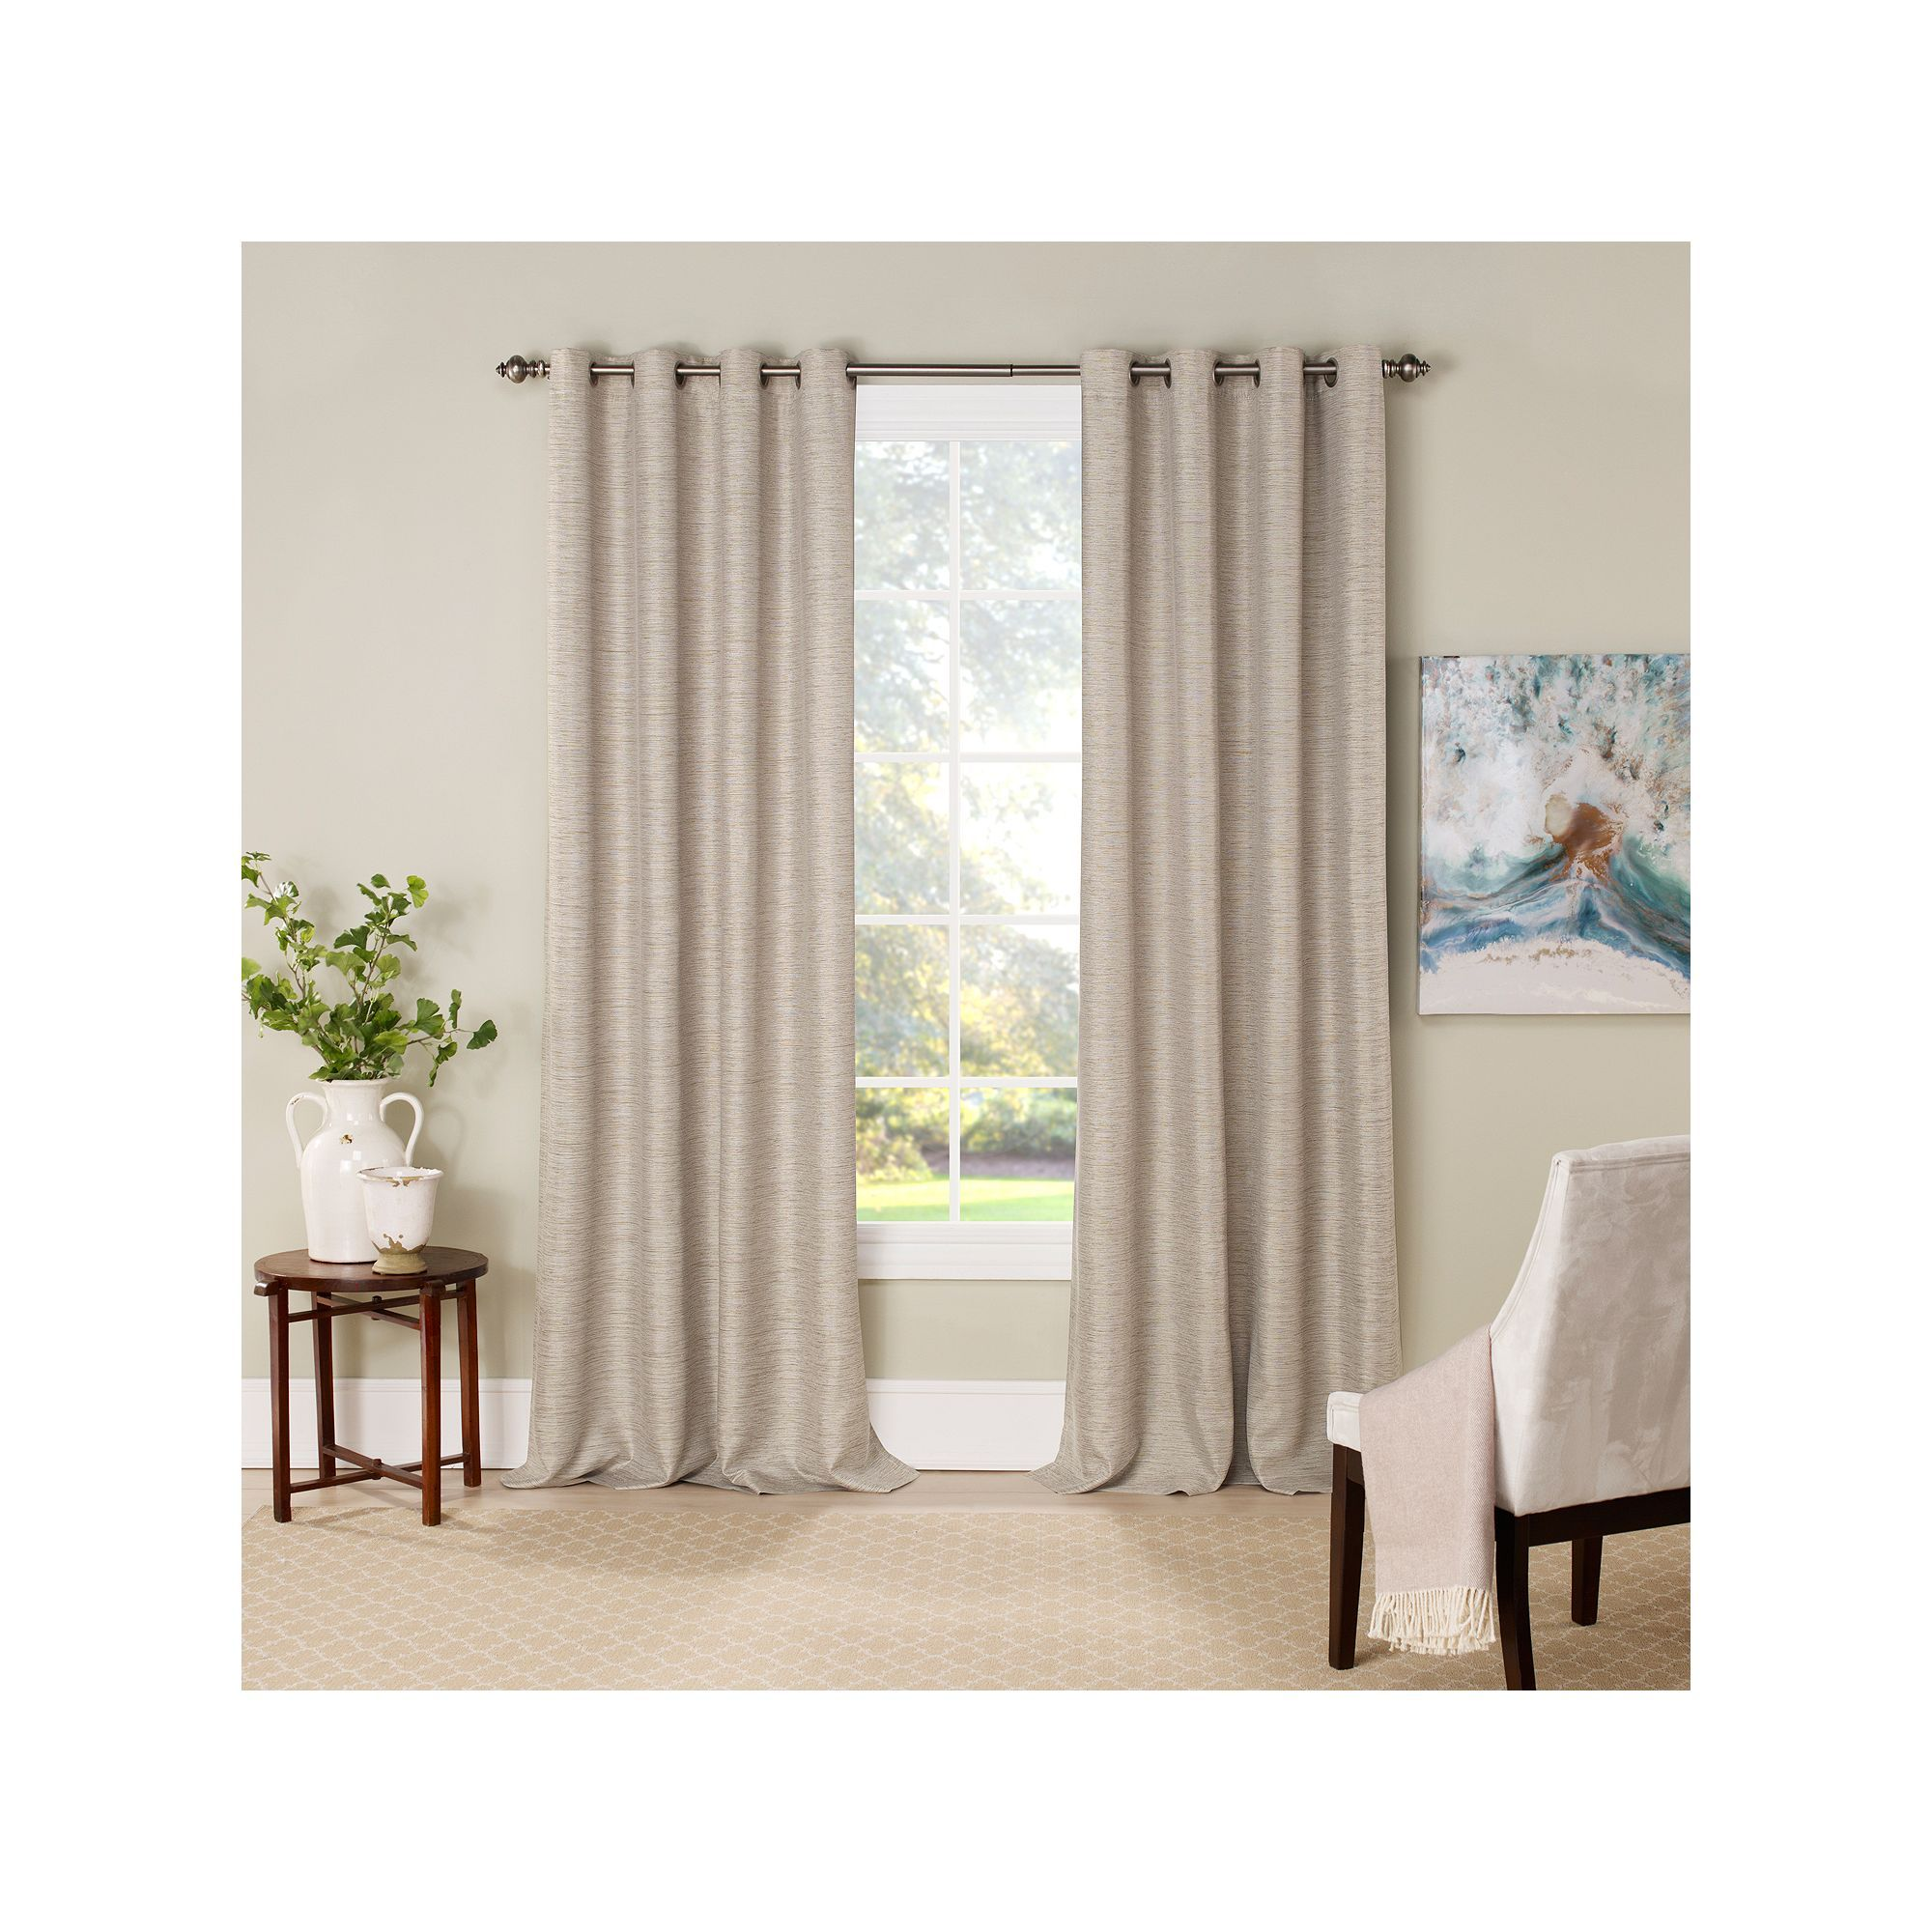 eclipse Newport Thermalayer Blackout Curtain, Green